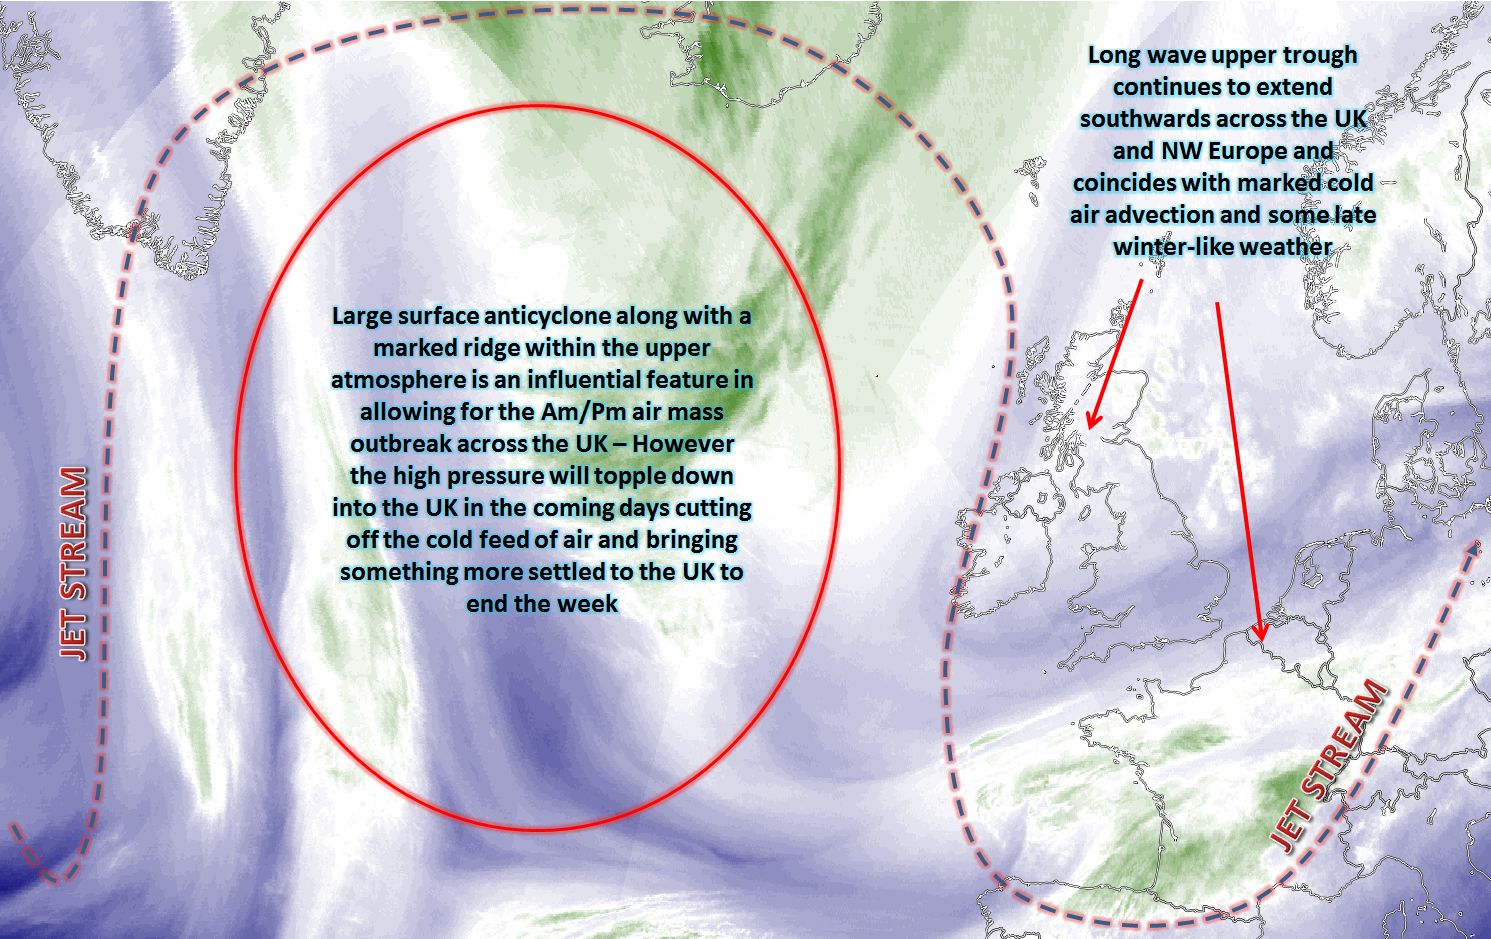 Synoptic Guidance - Changeable Outlook Ahead